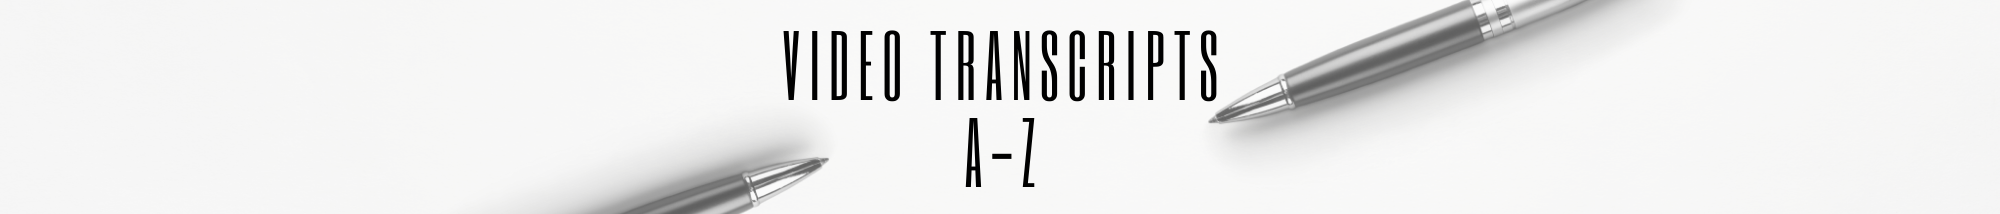 Video Transcripts A to Z